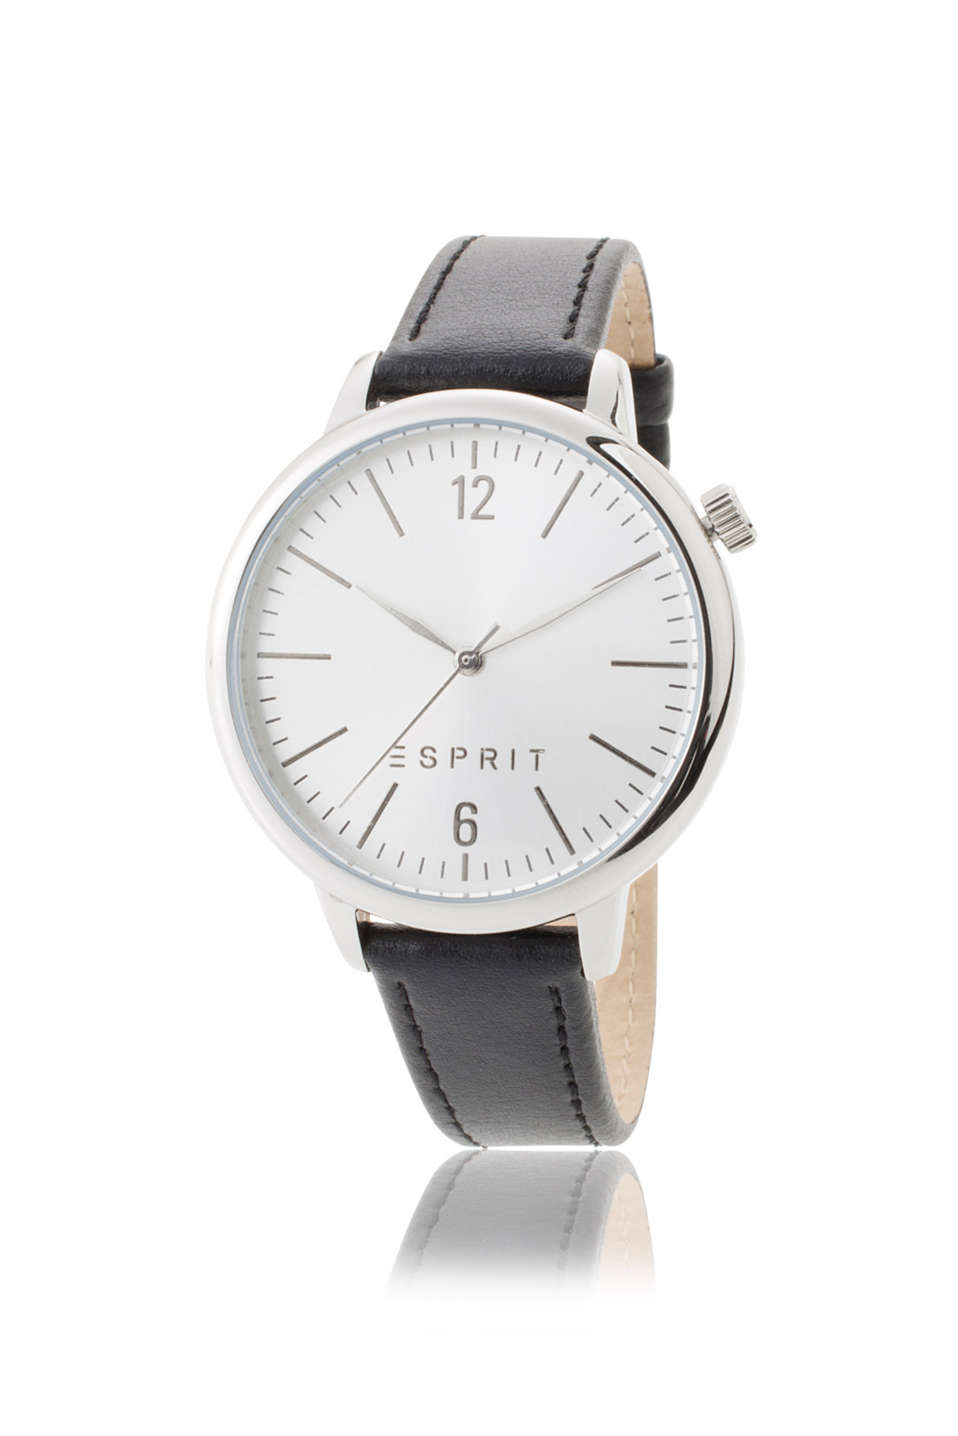 Esprit - womens watch with a black leather strap